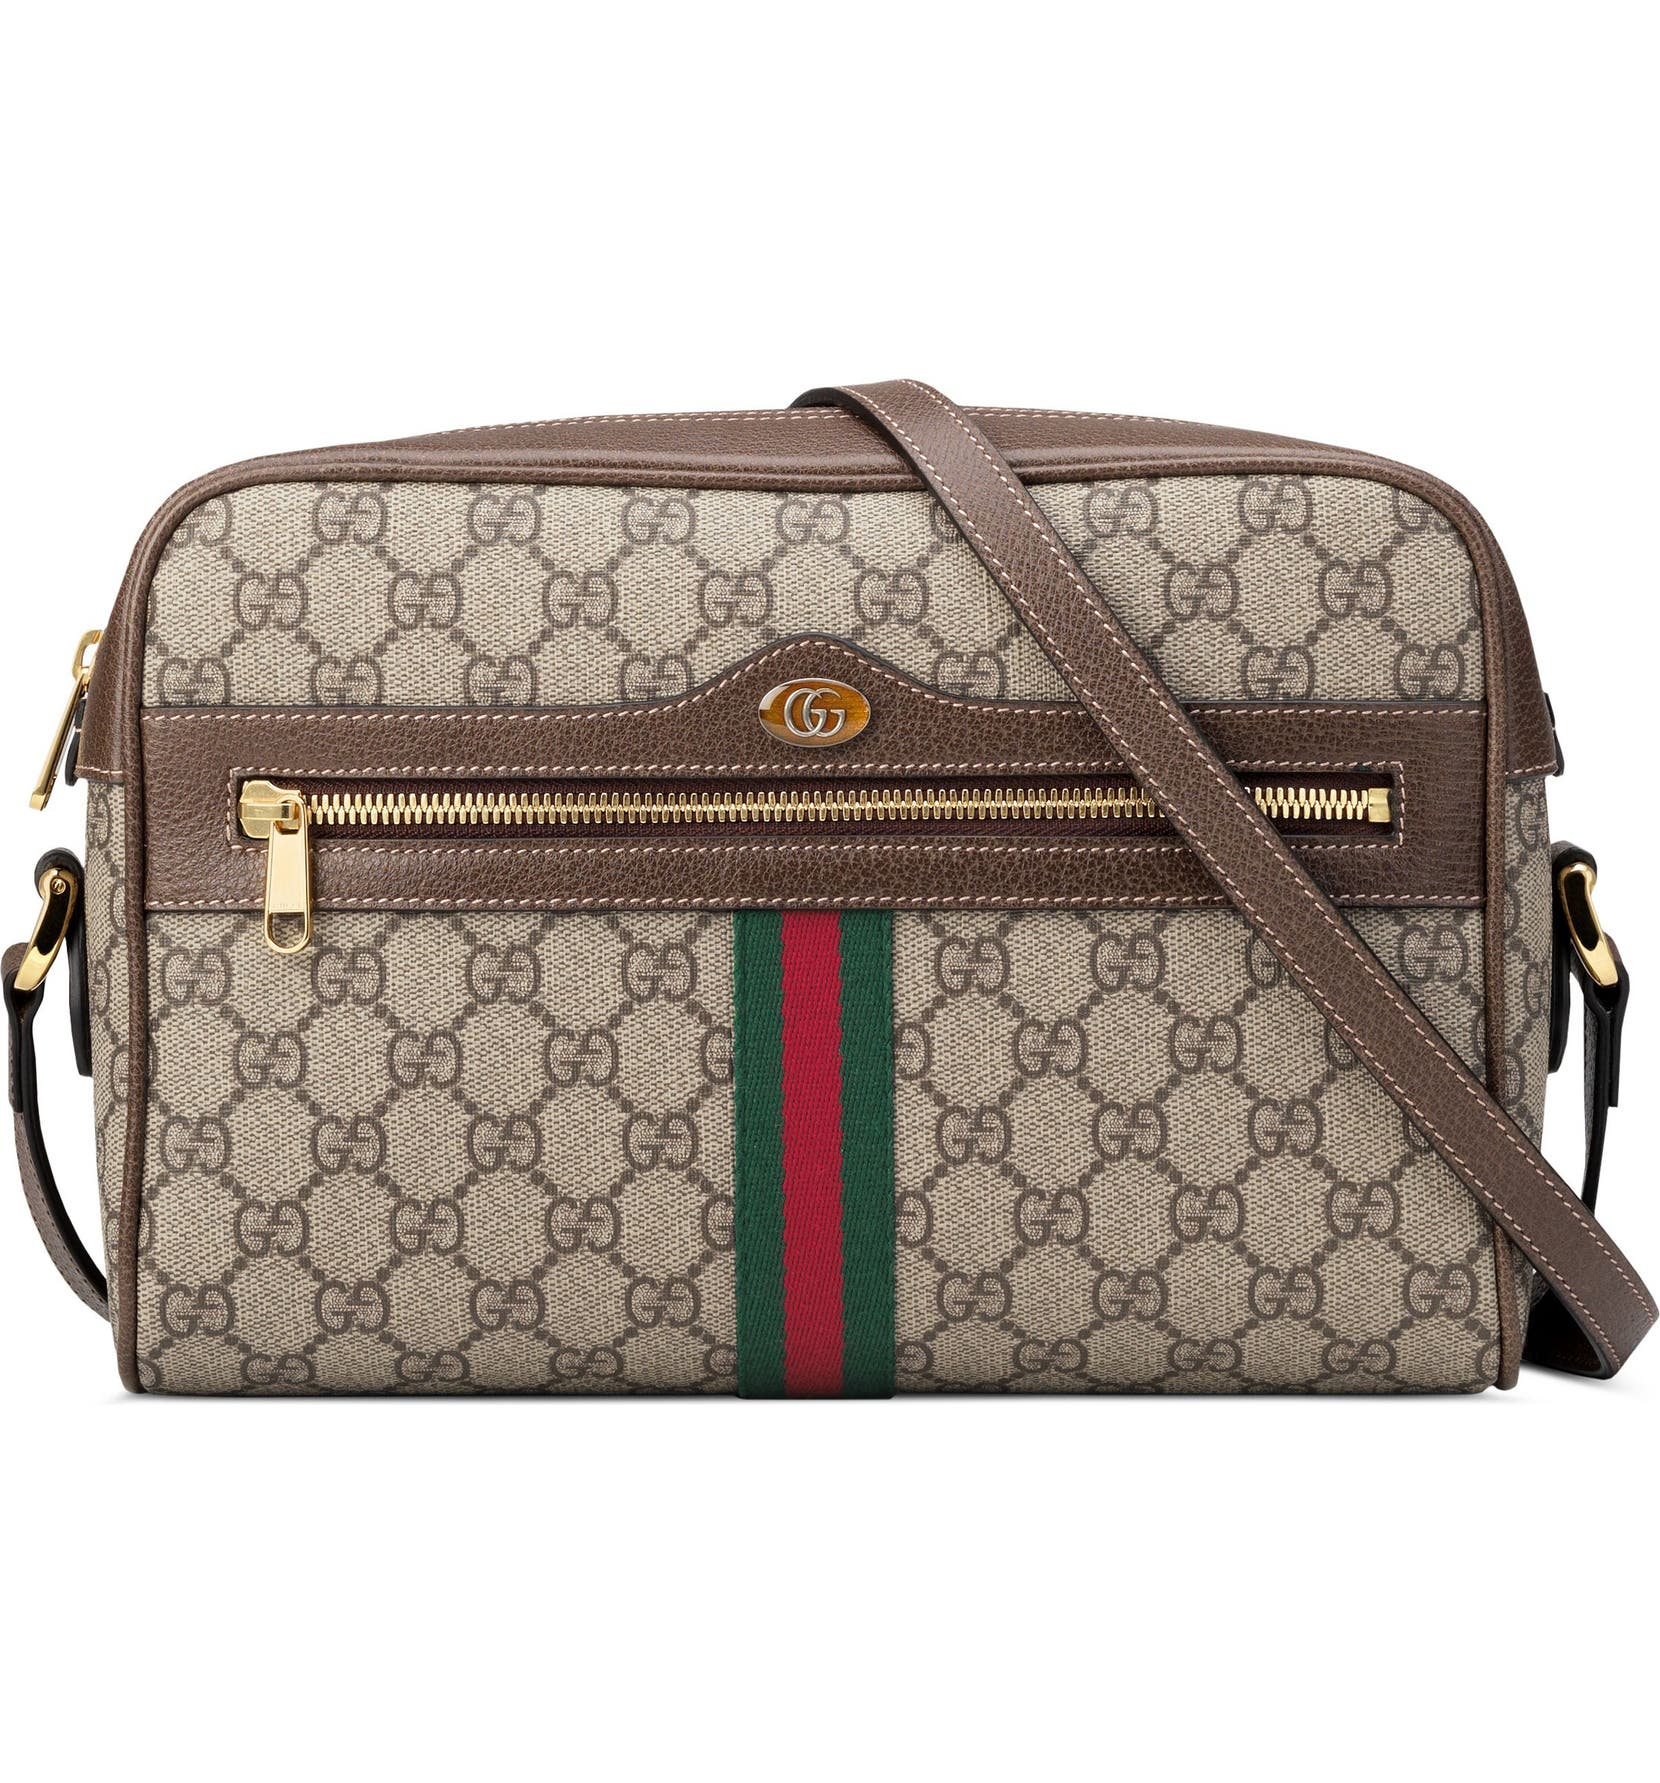 Gucci Ophidia GG Supreme Canvas Crossbody Bag  b83ef1798756e